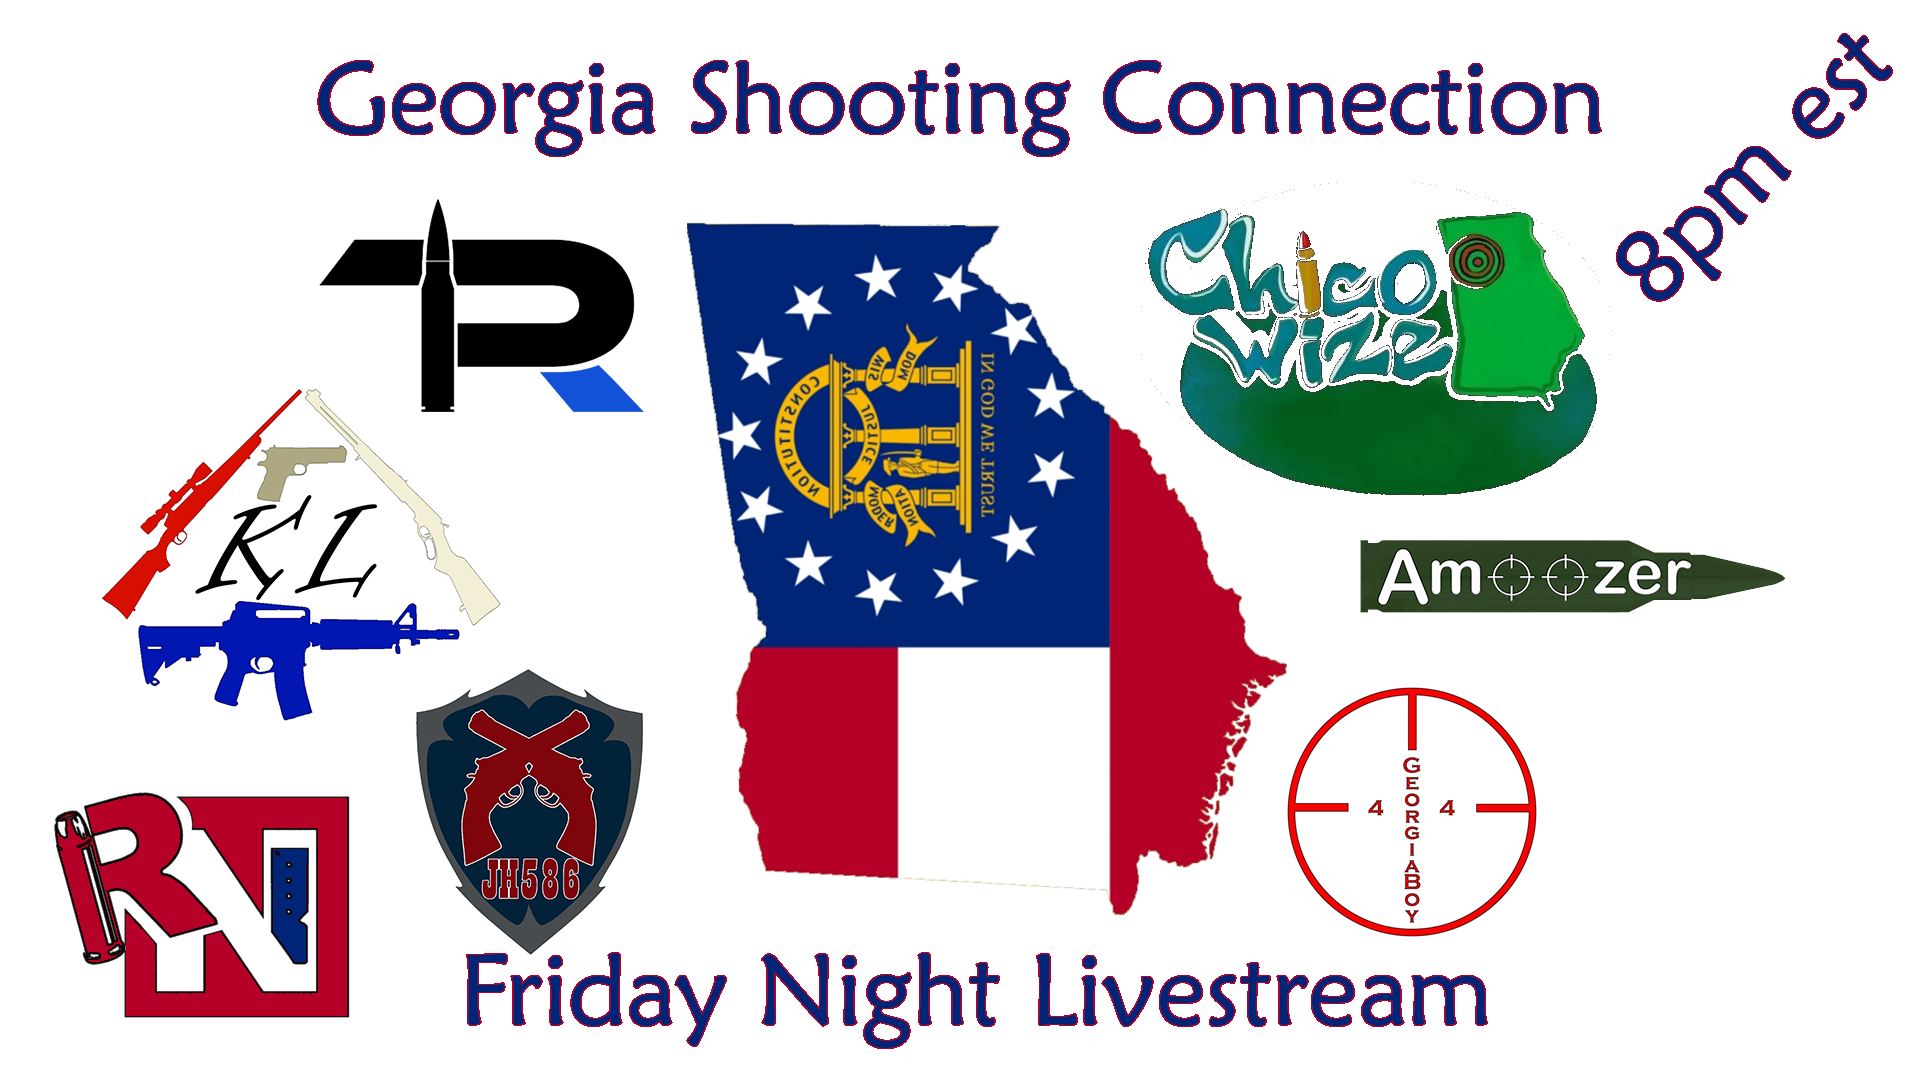 Georgia Shooting Connection Friday Night Live Stream 7/12/19 14